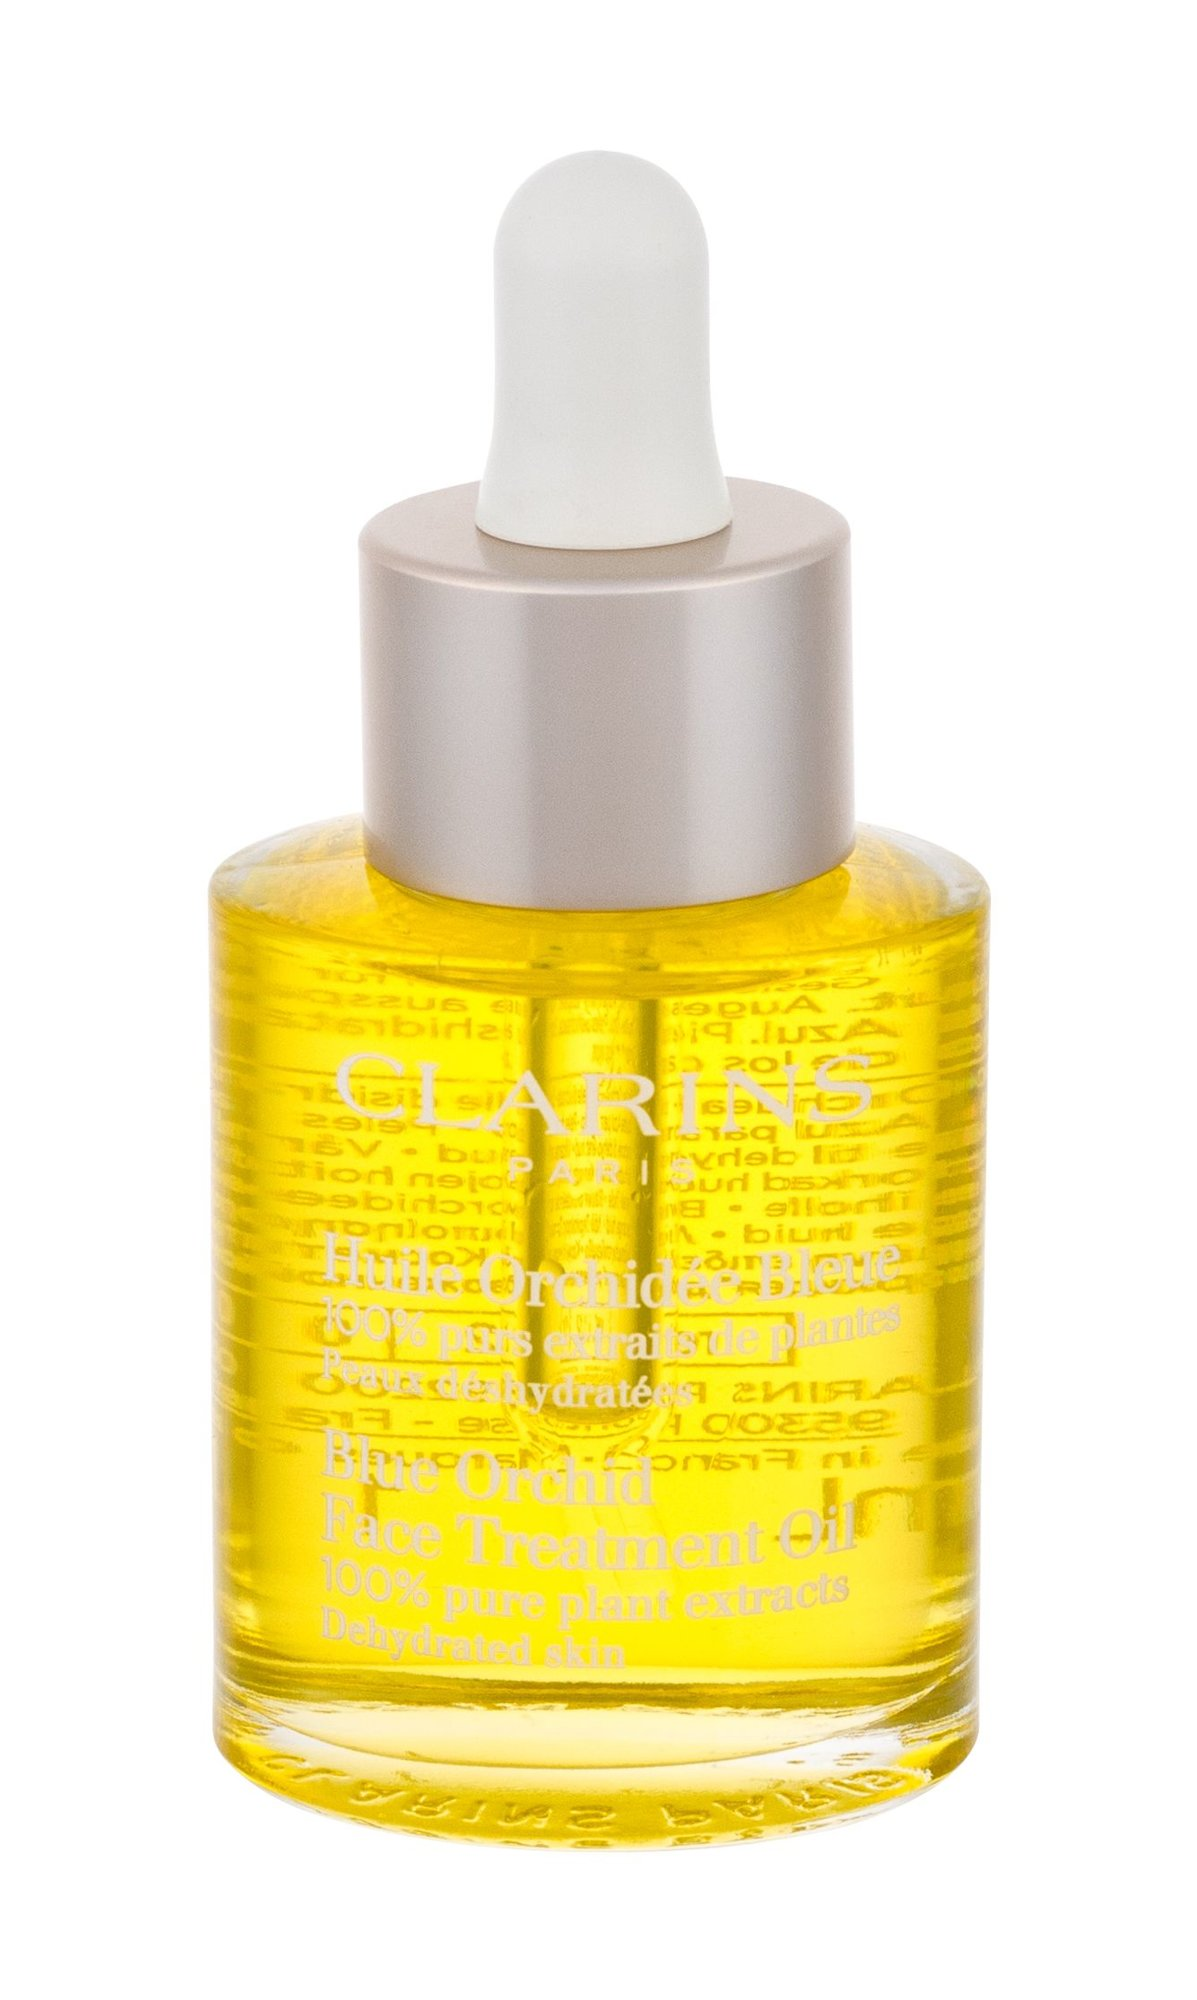 Clarins Face Treatment Oil Cosmetic 30ml